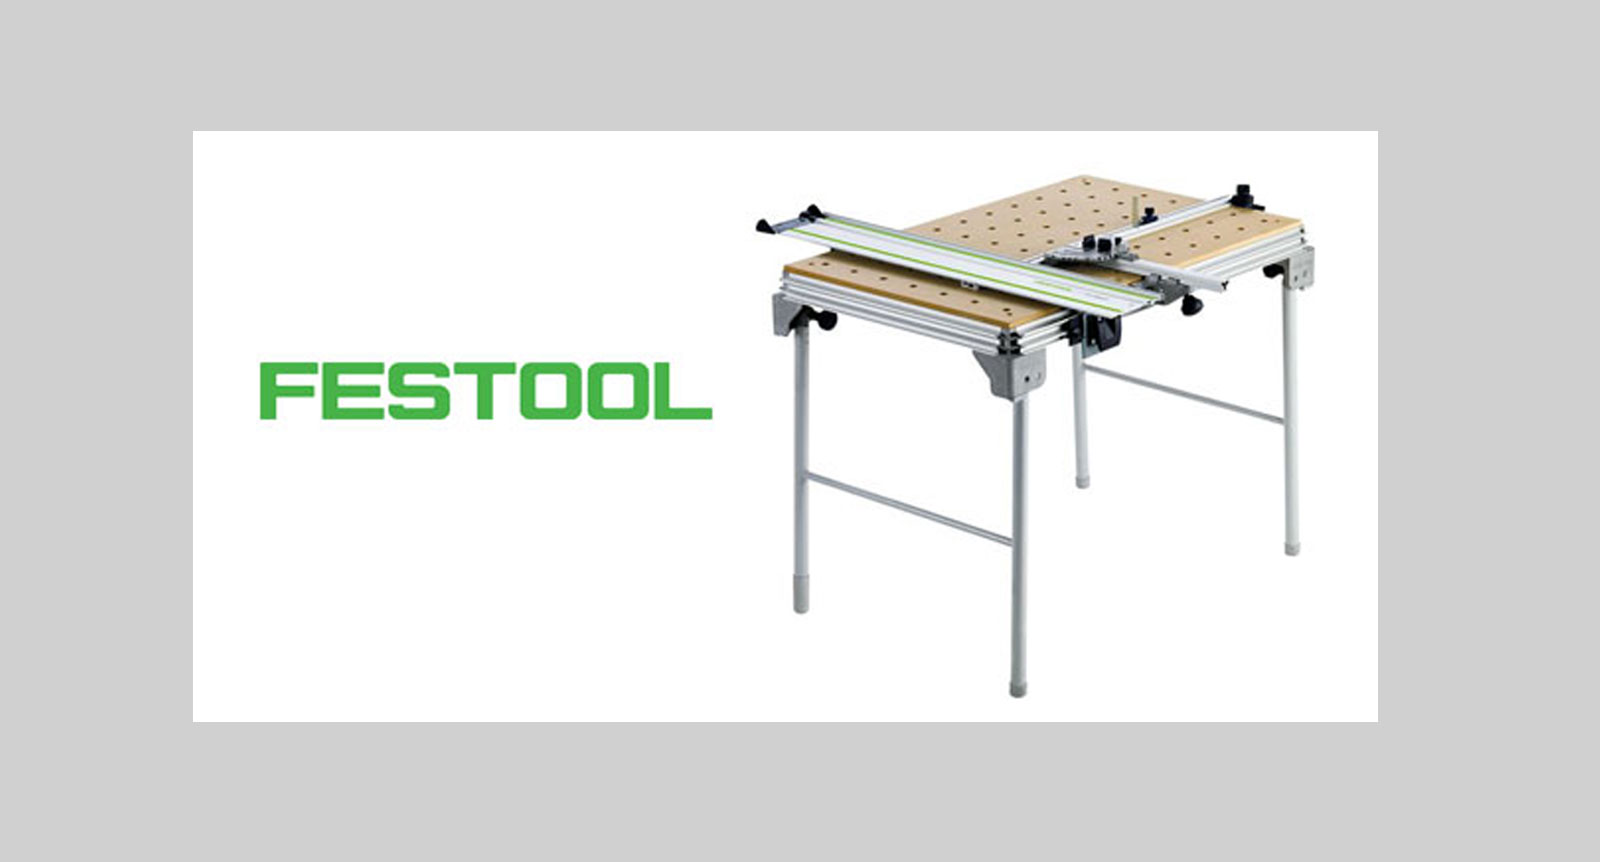 Product Spotlight: Festool's MFT/3 Multifunction Work Table